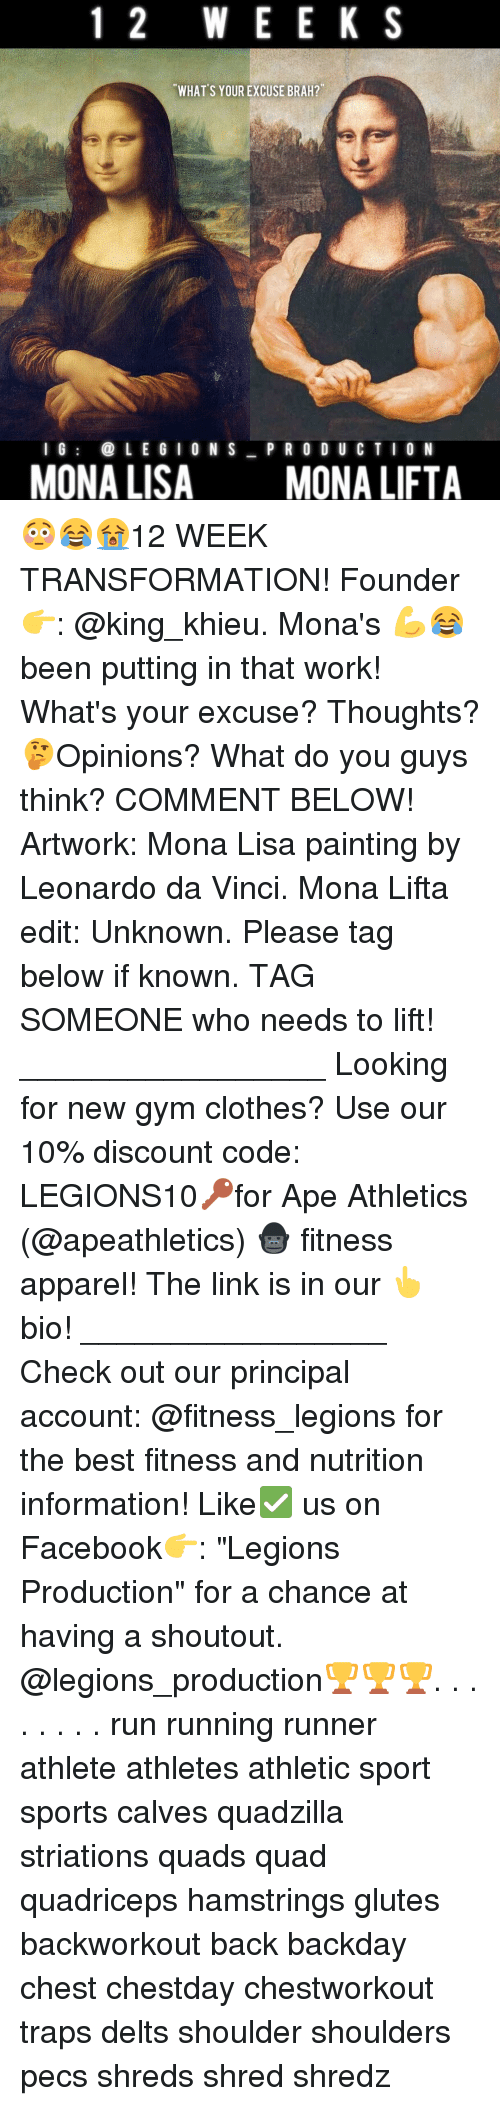 """Clothes, Facebook, and Gym: 1 2 W E E K S  WHAT S YOUR EXCUSE BRAH?  I G  LEGION S  P R O D U C T I O N  MONA LISA  MONA LIFTA 😳😂😭12 WEEK TRANSFORMATION! Founder 👉: @king_khieu. Mona's 💪😂 been putting in that work! What's your excuse? Thoughts? 🤔Opinions? What do you guys think? COMMENT BELOW! Artwork: Mona Lisa painting by Leonardo da Vinci. Mona Lifta edit: Unknown. Please tag below if known. TAG SOMEONE who needs to lift! _________________ Looking for new gym clothes? Use our 10% discount code: LEGIONS10🔑for Ape Athletics (@apeathletics) 🦍 fitness apparel! The link is in our 👆 bio! _________________ Check out our principal account: @fitness_legions for the best fitness and nutrition information! Like✅ us on Facebook👉: """"Legions Production"""" for a chance at having a shoutout. @legions_production🏆🏆🏆. . . . . . . . run running runner athlete athletes athletic sport sports calves quadzilla striations quads quad quadriceps hamstrings glutes backworkout back backday chest chestday chestworkout traps delts shoulder shoulders pecs shreds shred shredz"""